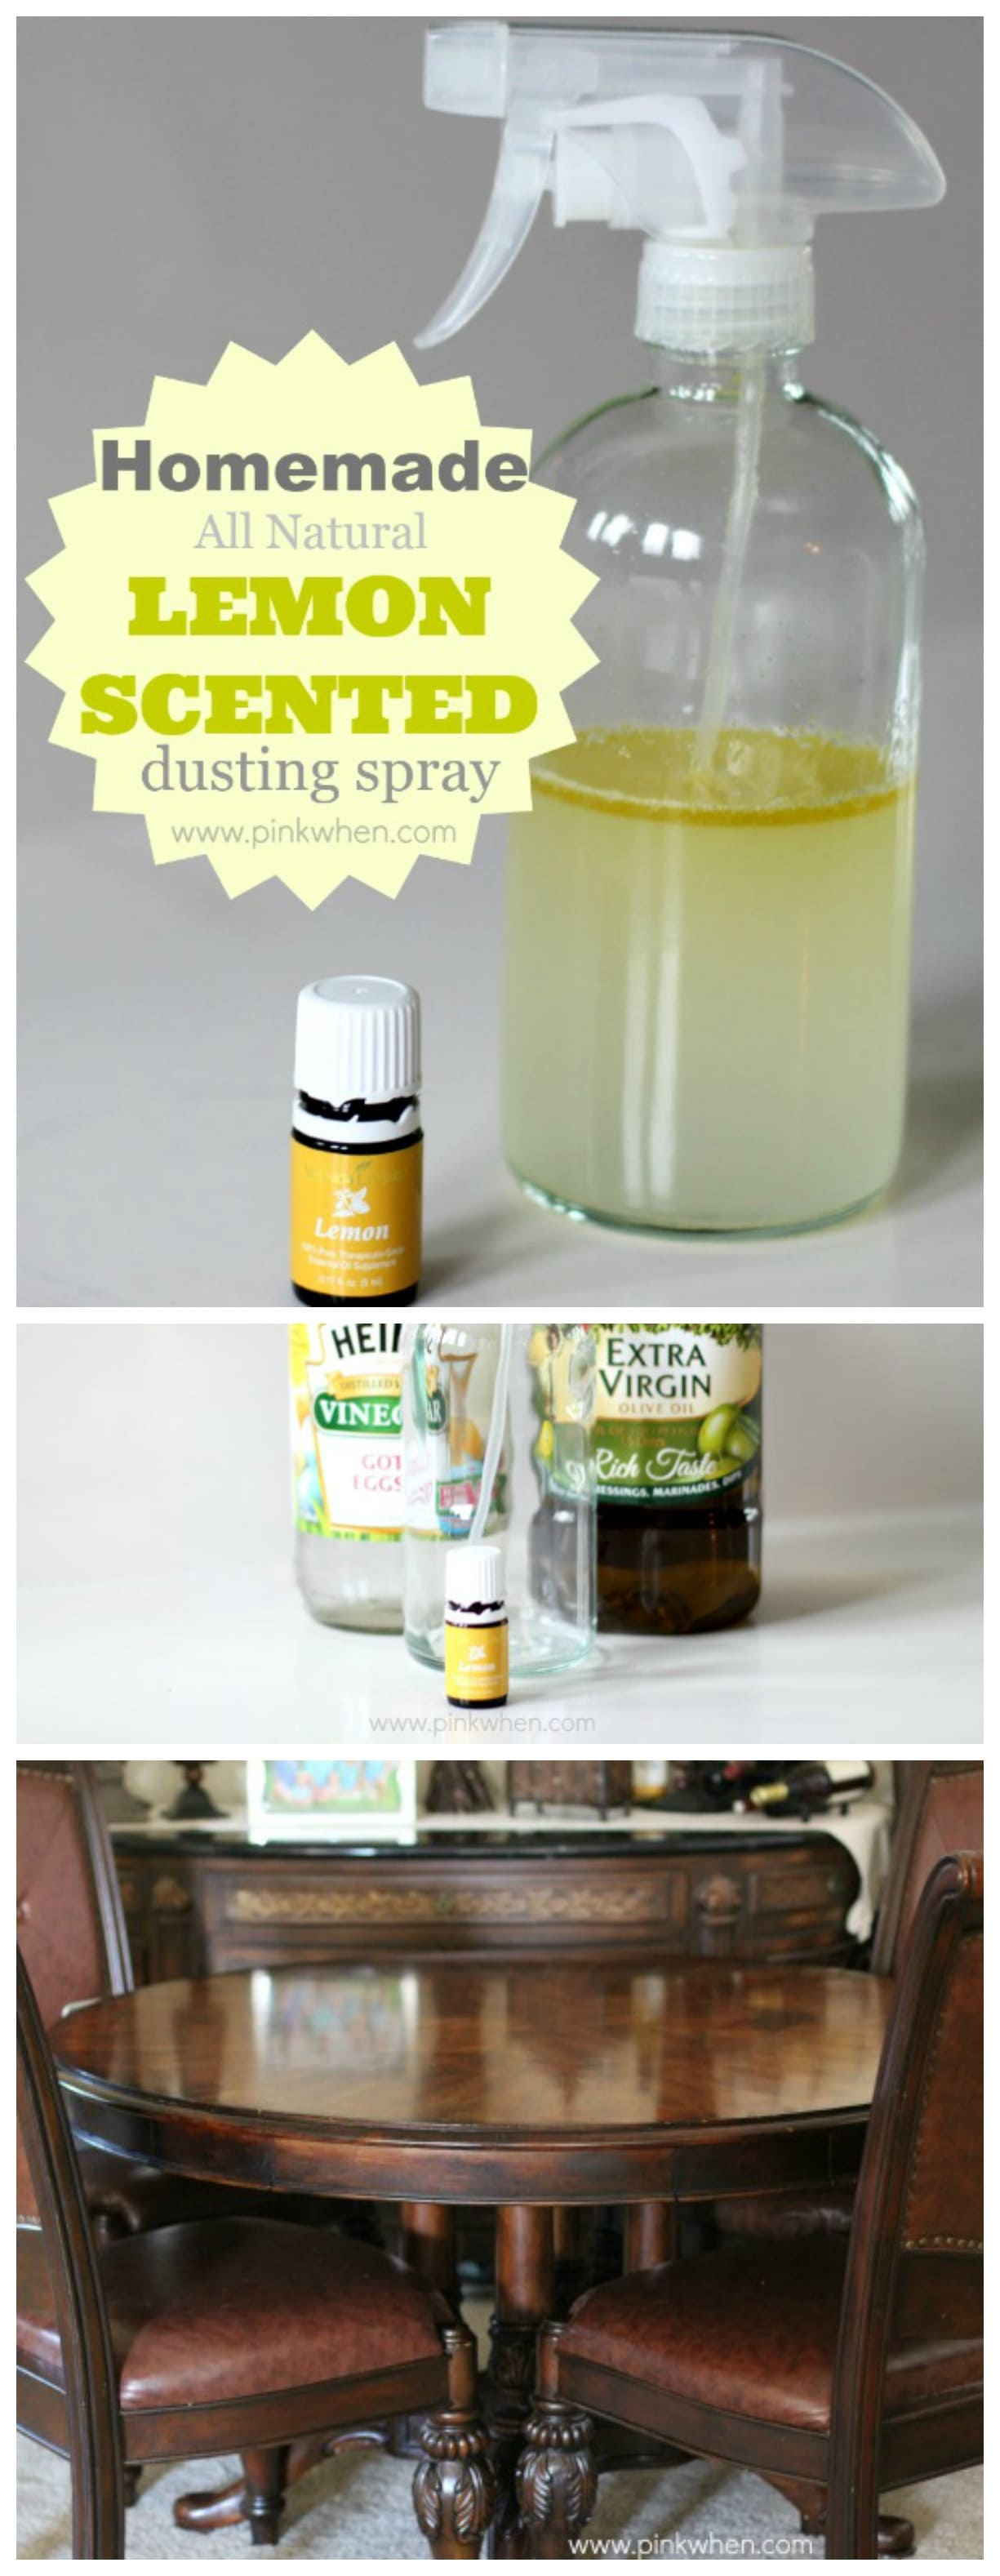 Learn the right combinations to use with your essential oils to make the best homemade lemon scented dusting spray. #essentialoils #lemon #cleaning #cleaninghack